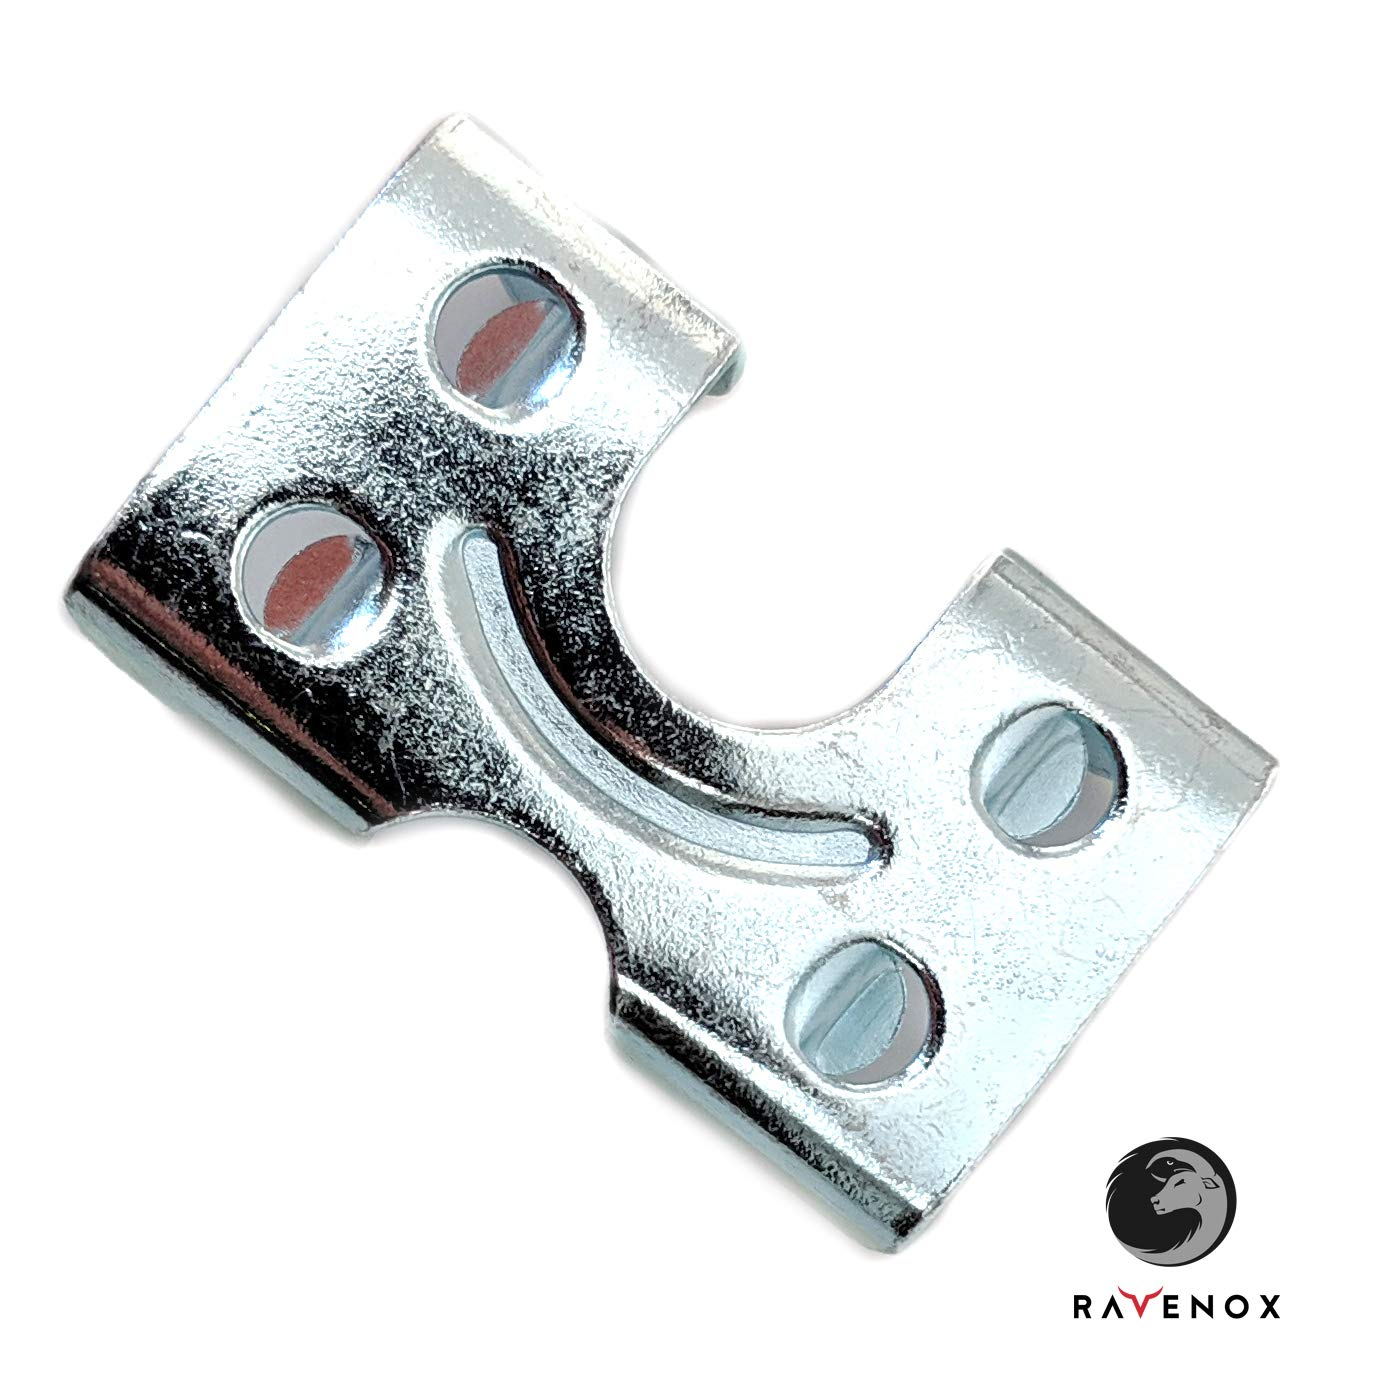 Ravenox Metal Clamps for Rope   3//8-inch x 20 Pack Cables /& Cords   Medium Duty Zinc Plated or Brass Plated Double Rope Clamps Brass Plated 1//2-inch or 5//8-inch Ropes Metal Clips for 3//8-inch